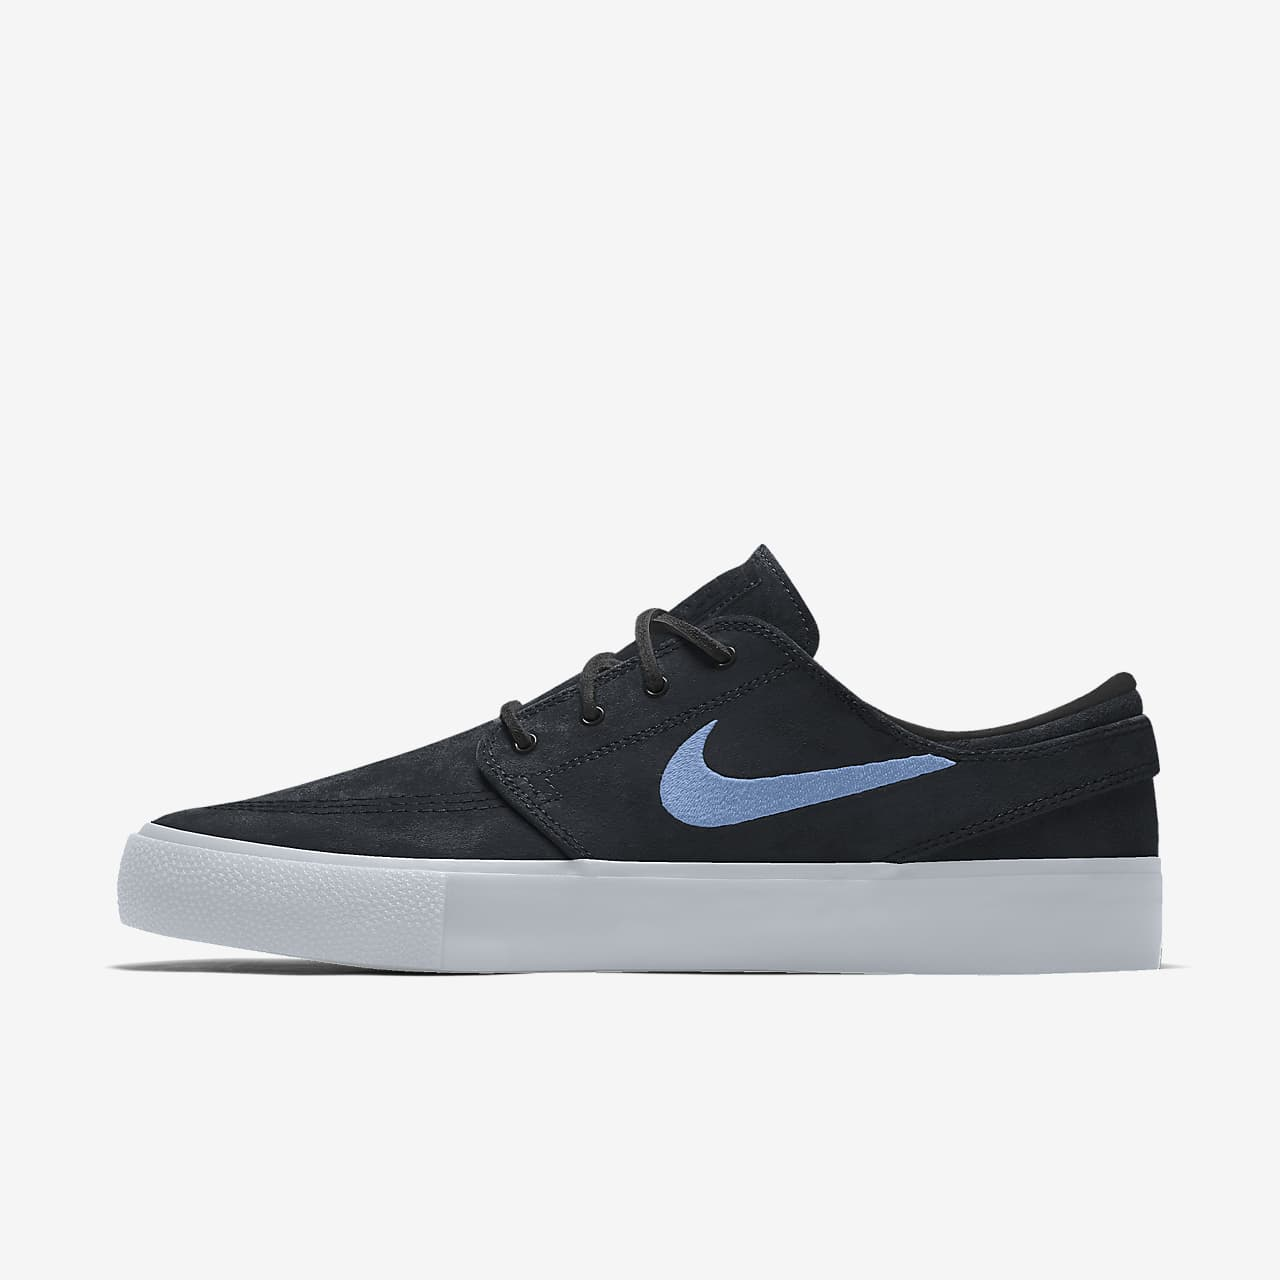 Chaussure de skateboard personnalisable Nike SB Air Zoom Janoski RM By You